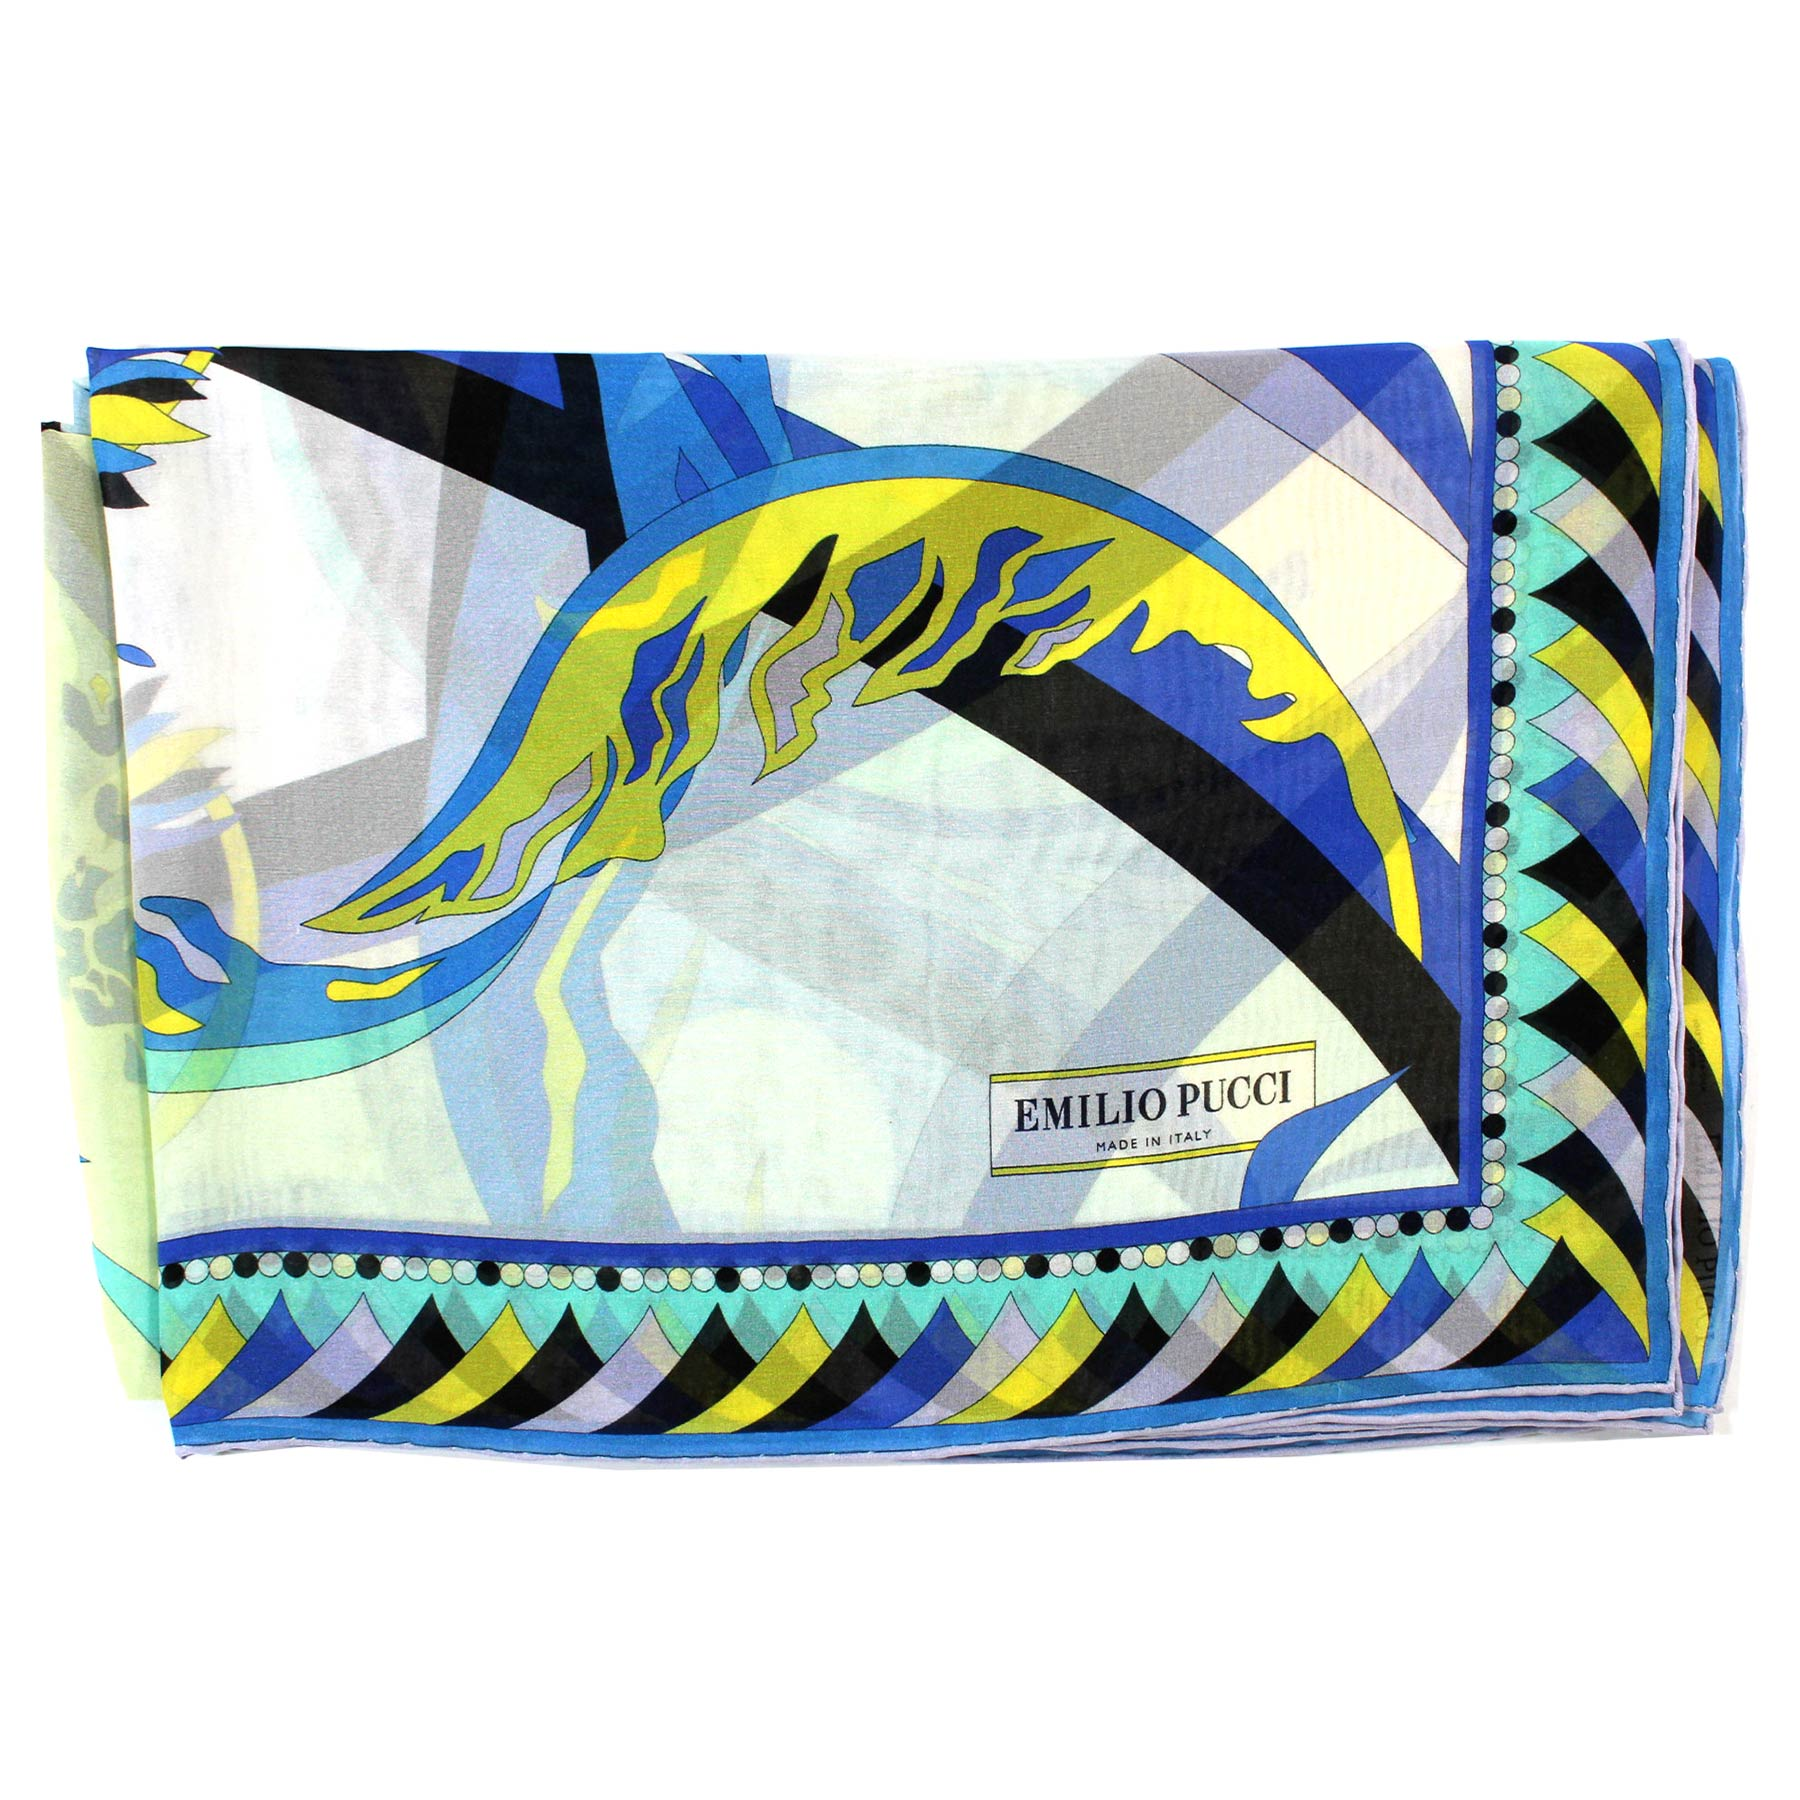 Emilio Pucci Scarf Royal Blue Yellow